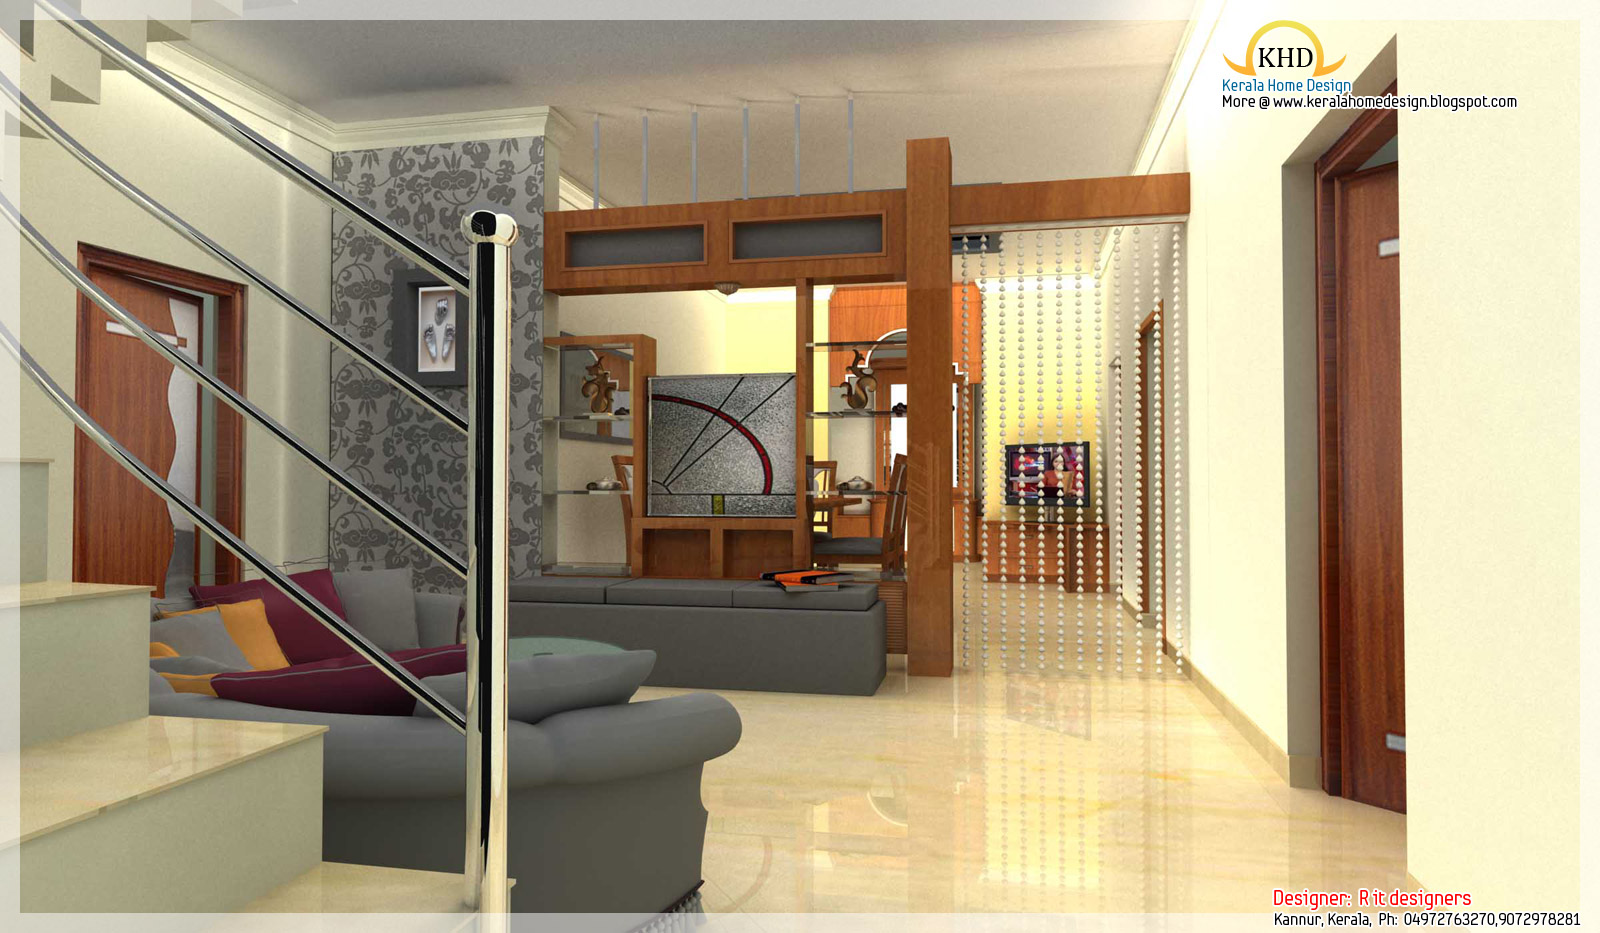 Interior design idea renderings kerala home design and for Interior designs in house